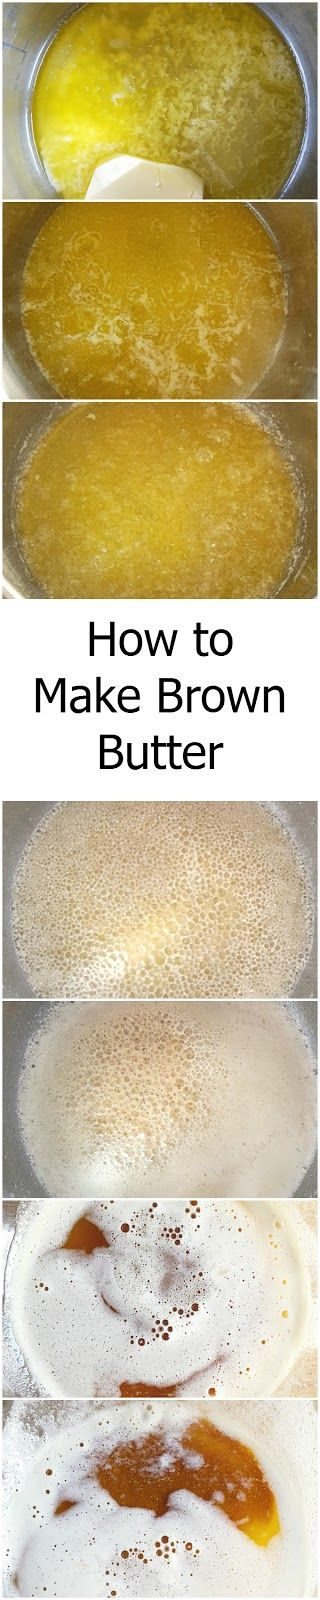 How to Make Brown Butter #tutorial includes step by step pictures